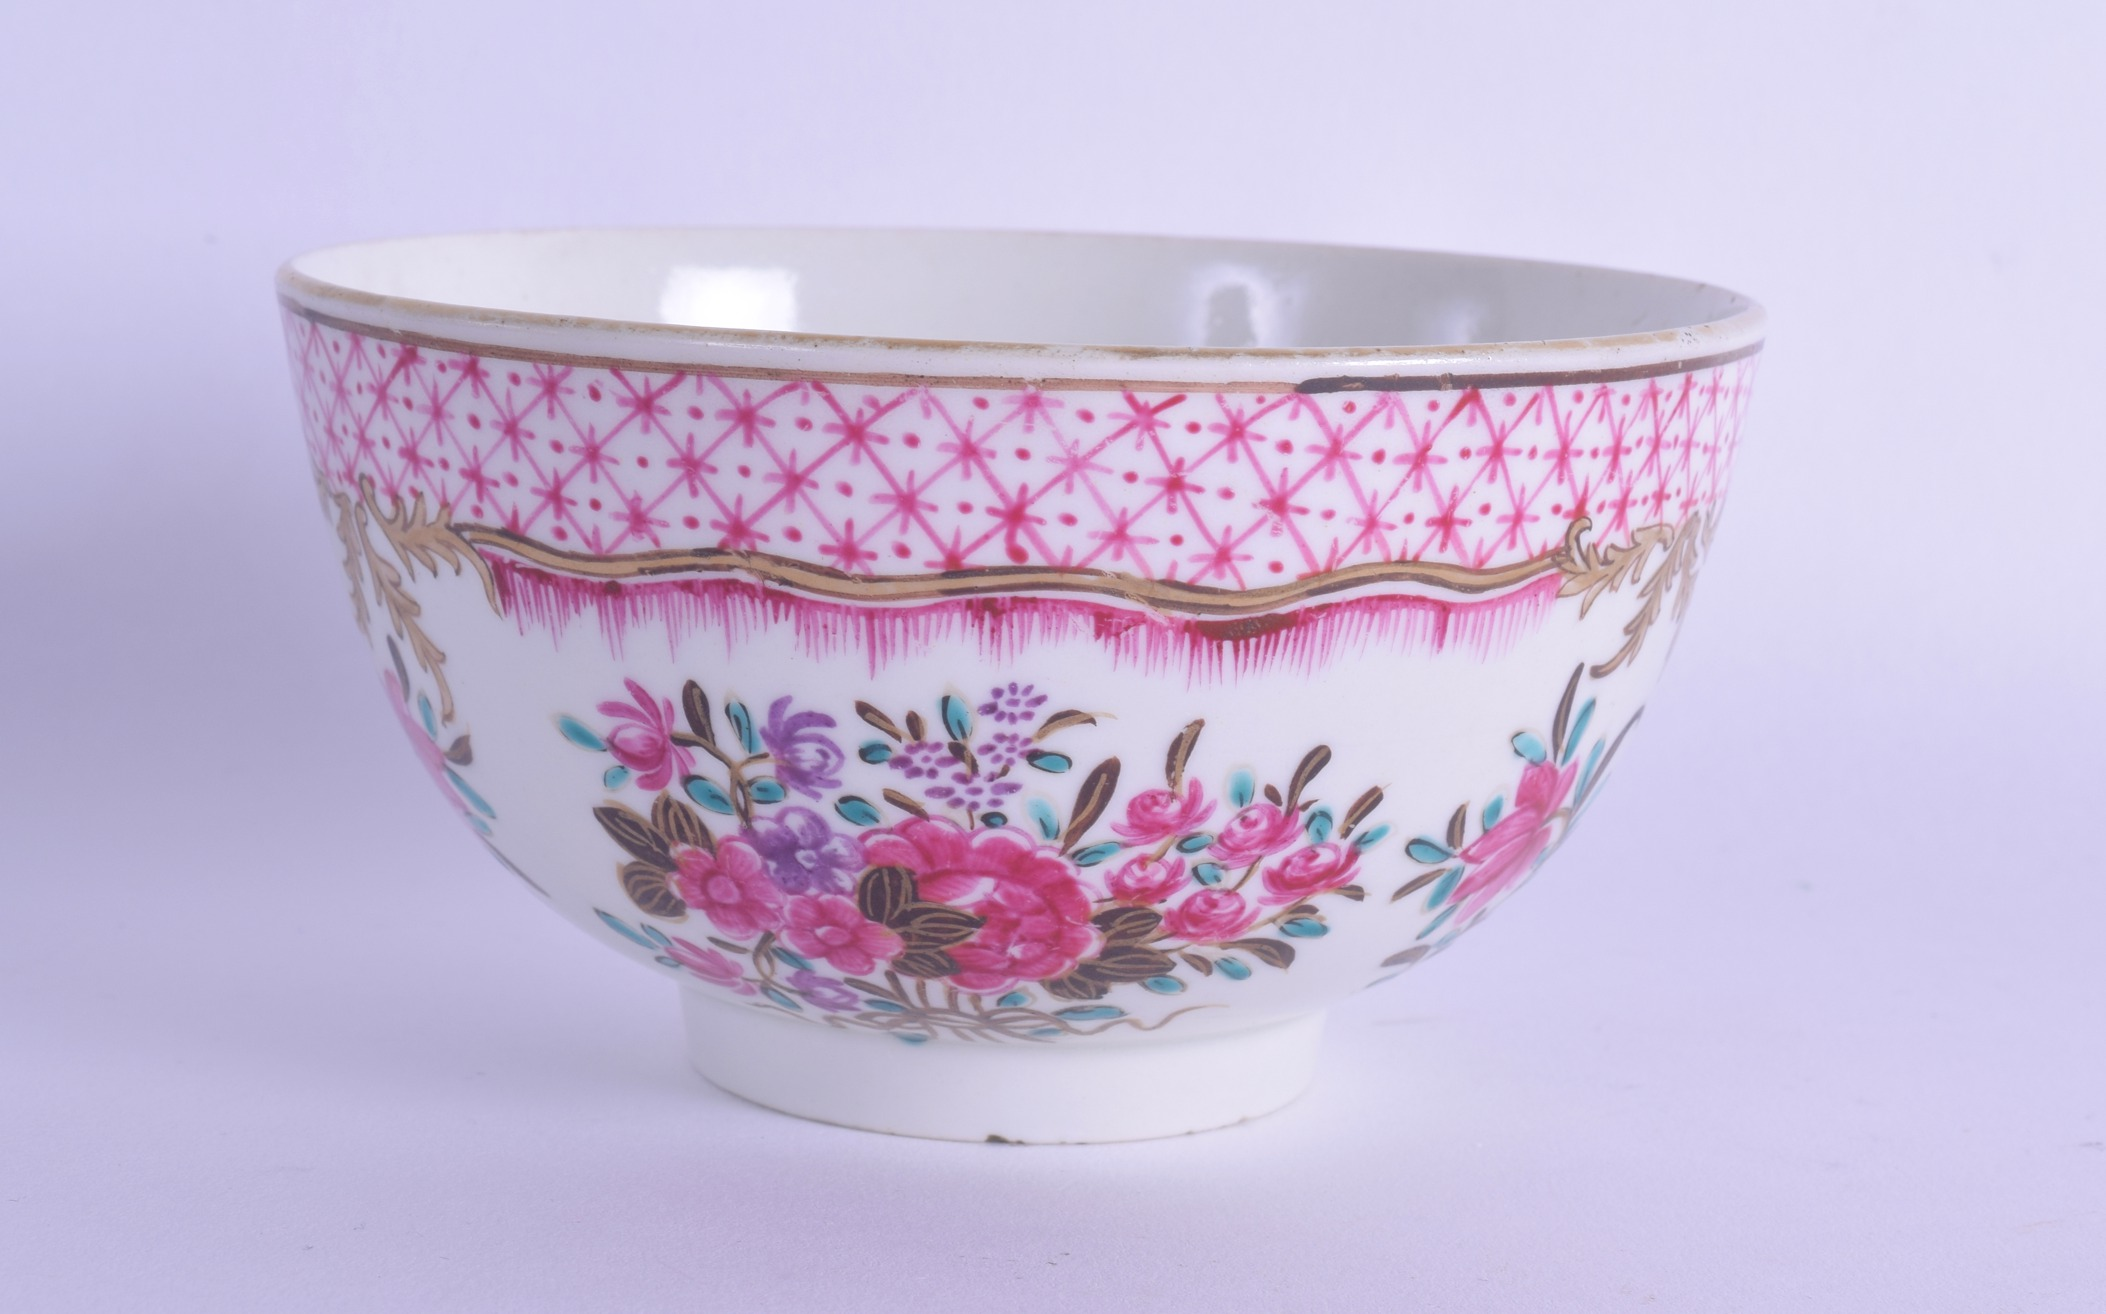 Lot 127 - 18th c. Worcester rare Chinese export style bowl painted with scattered flower sprays one bunch tied